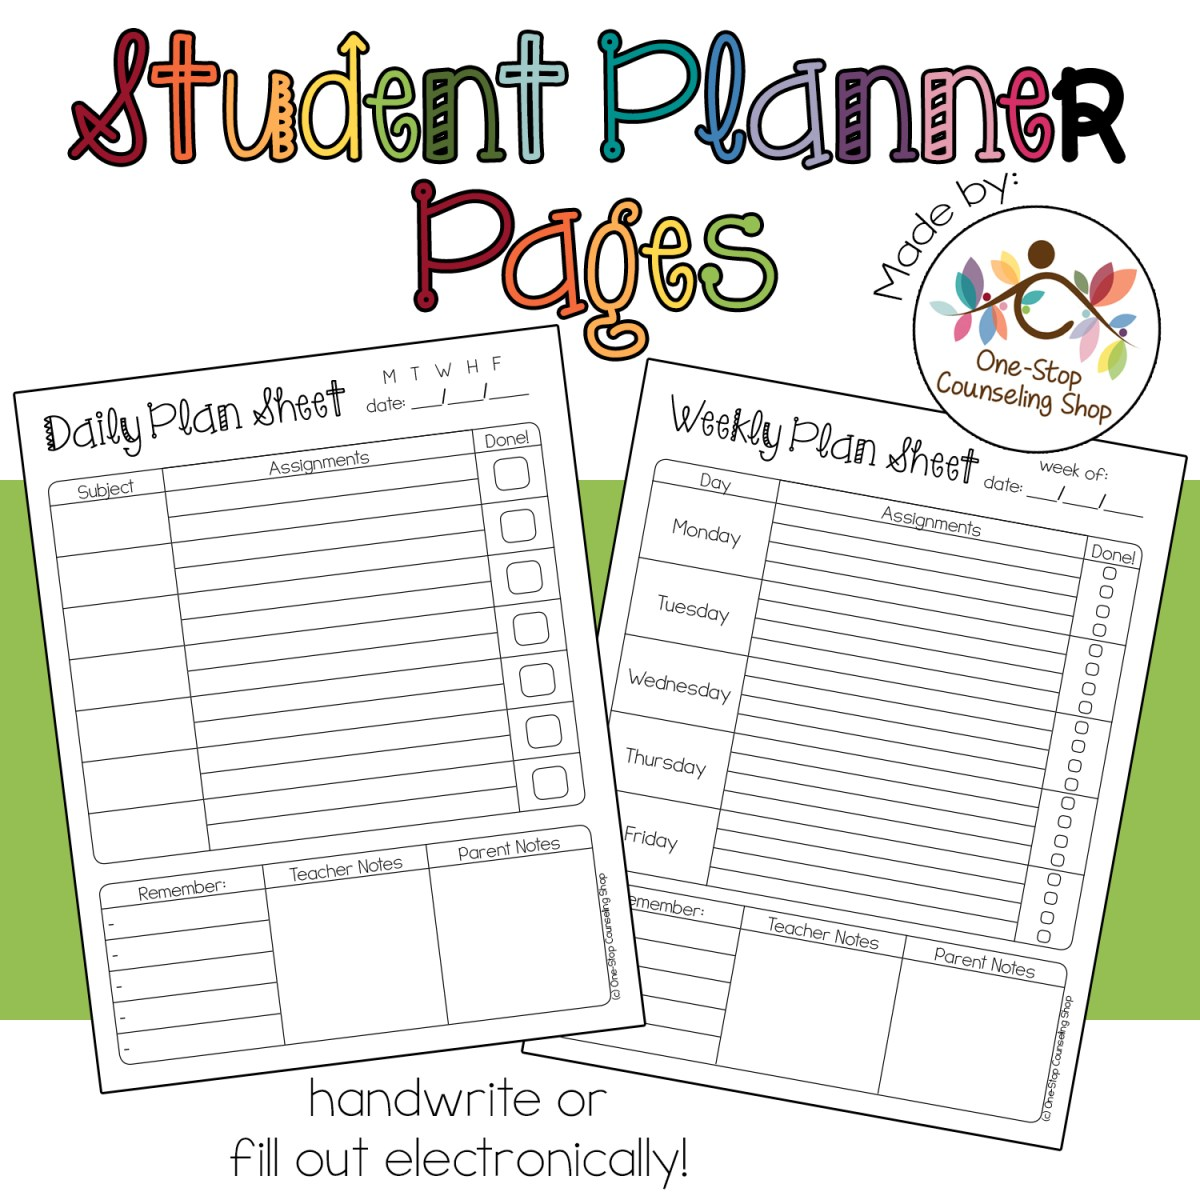 new product student planner pages